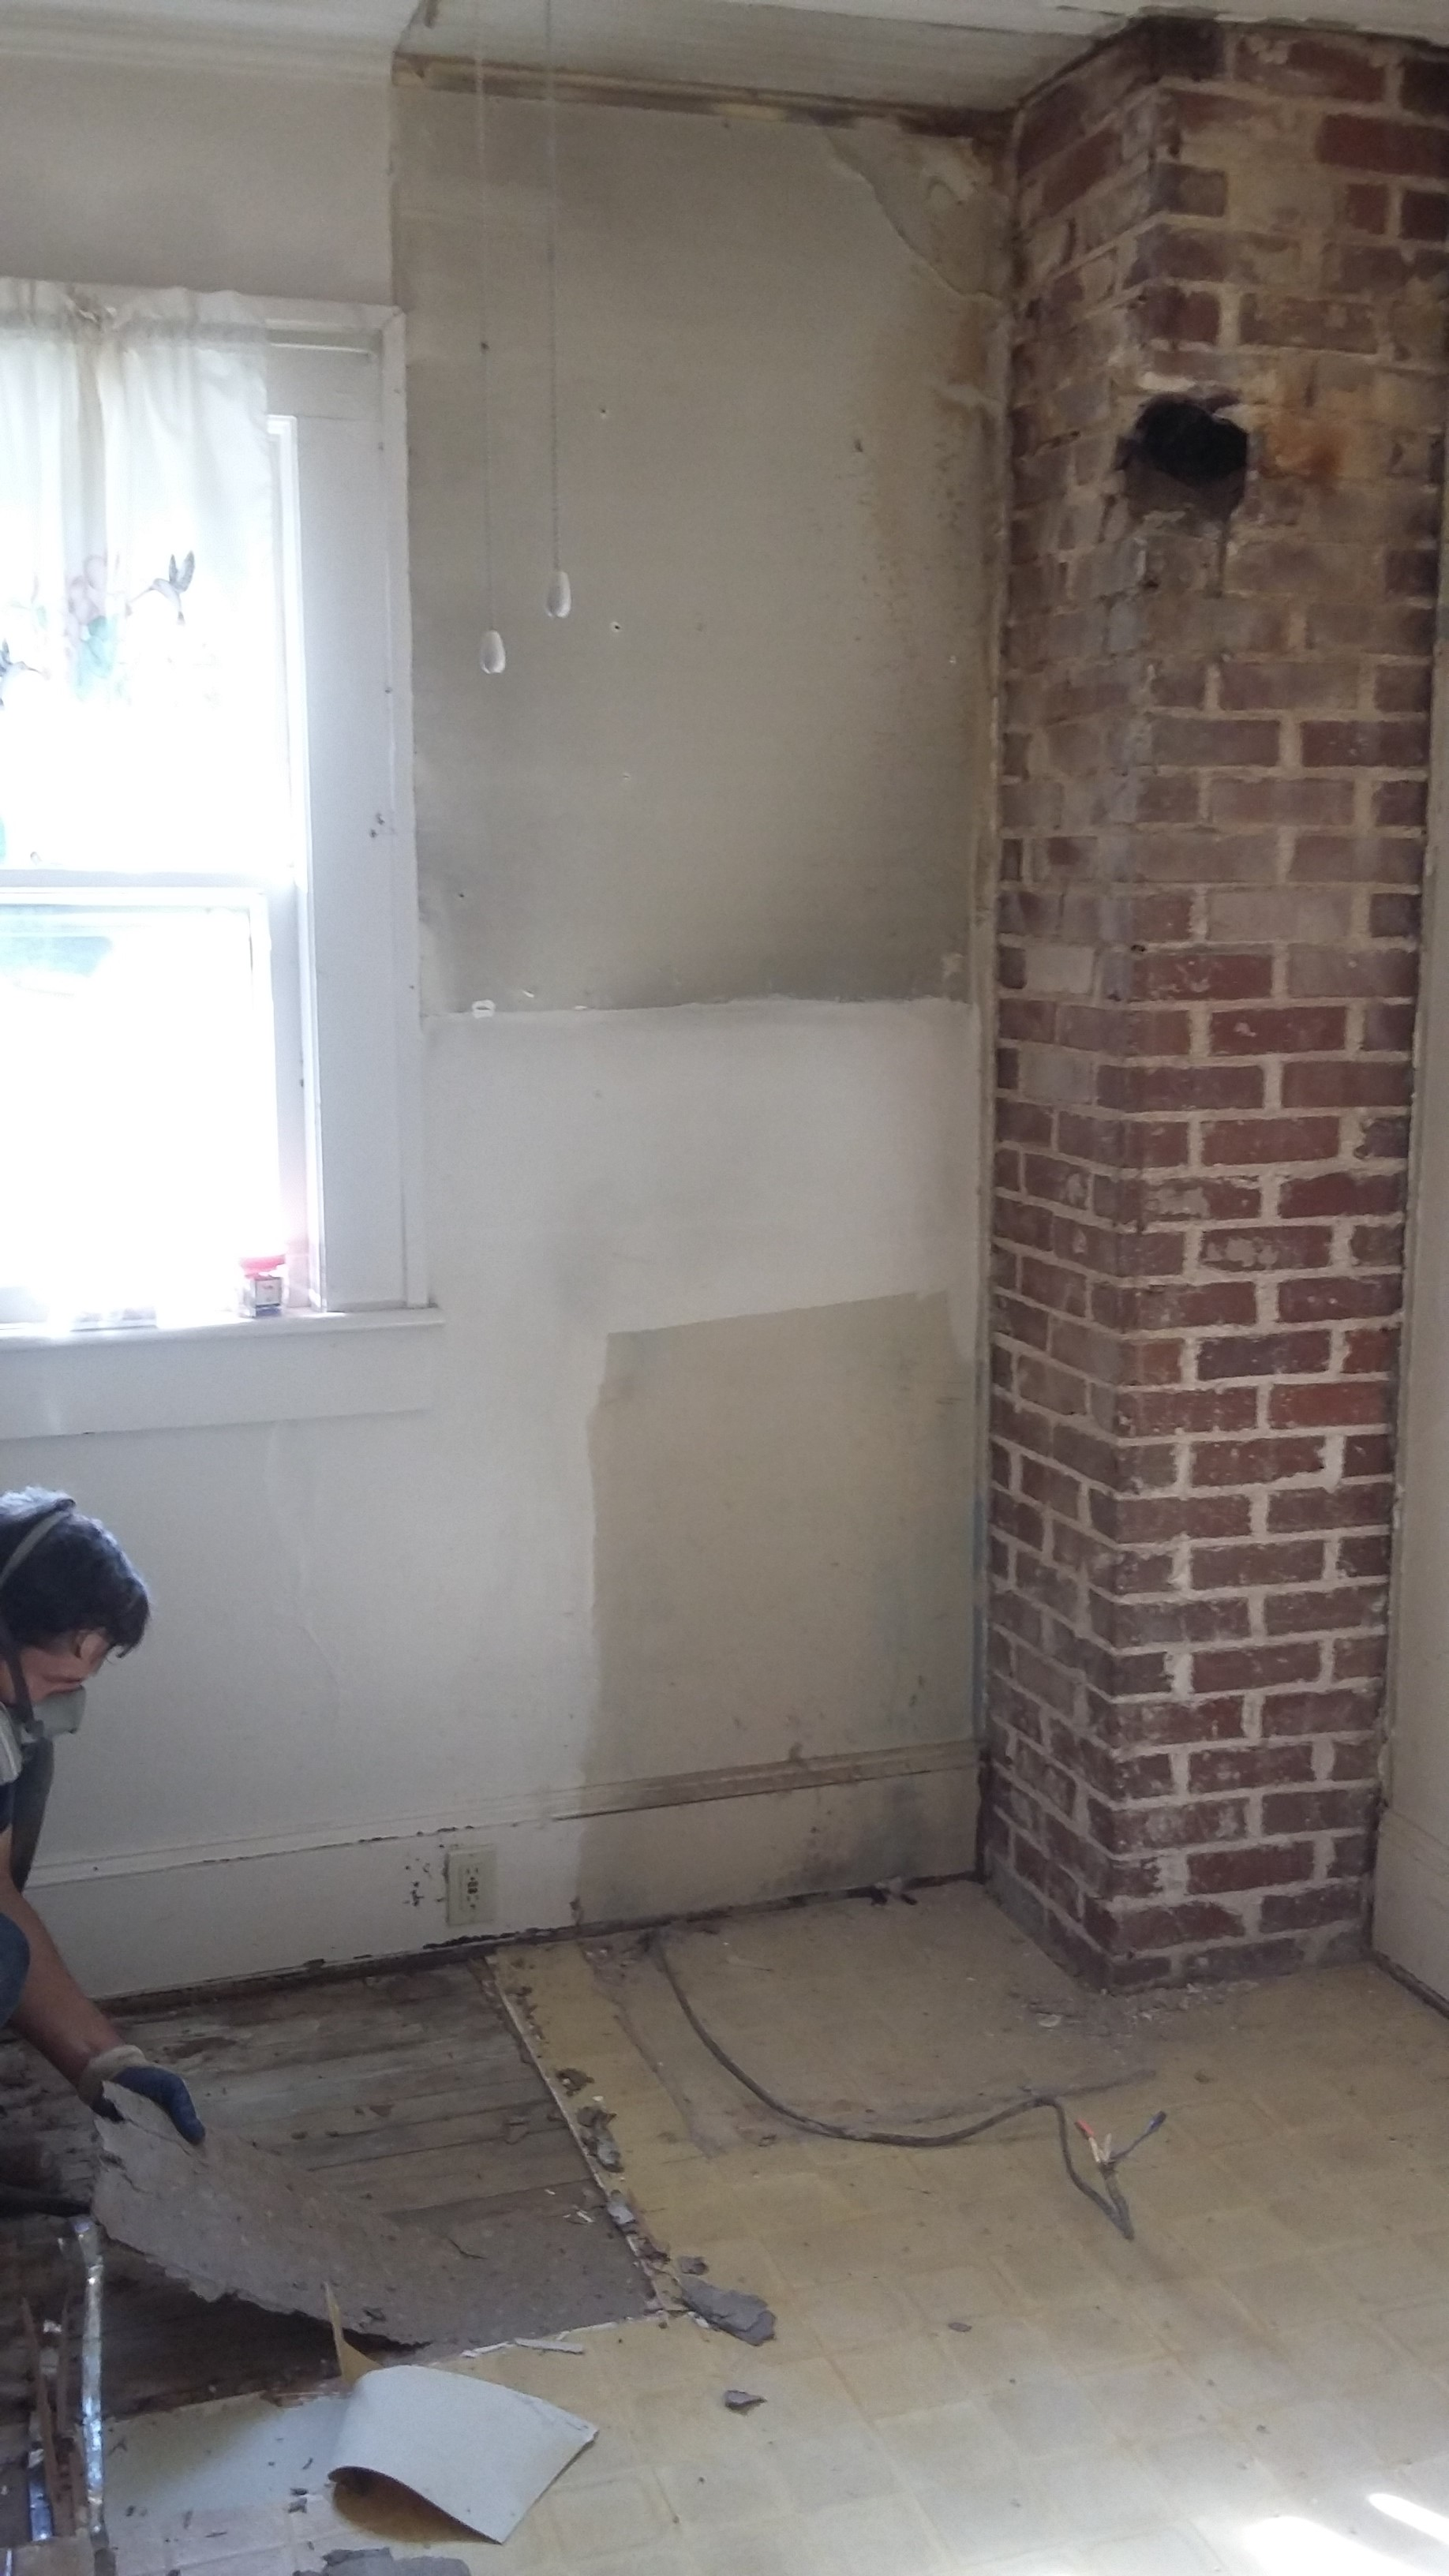 HOUSE FLIPPING DURING RENOVATIONS 2